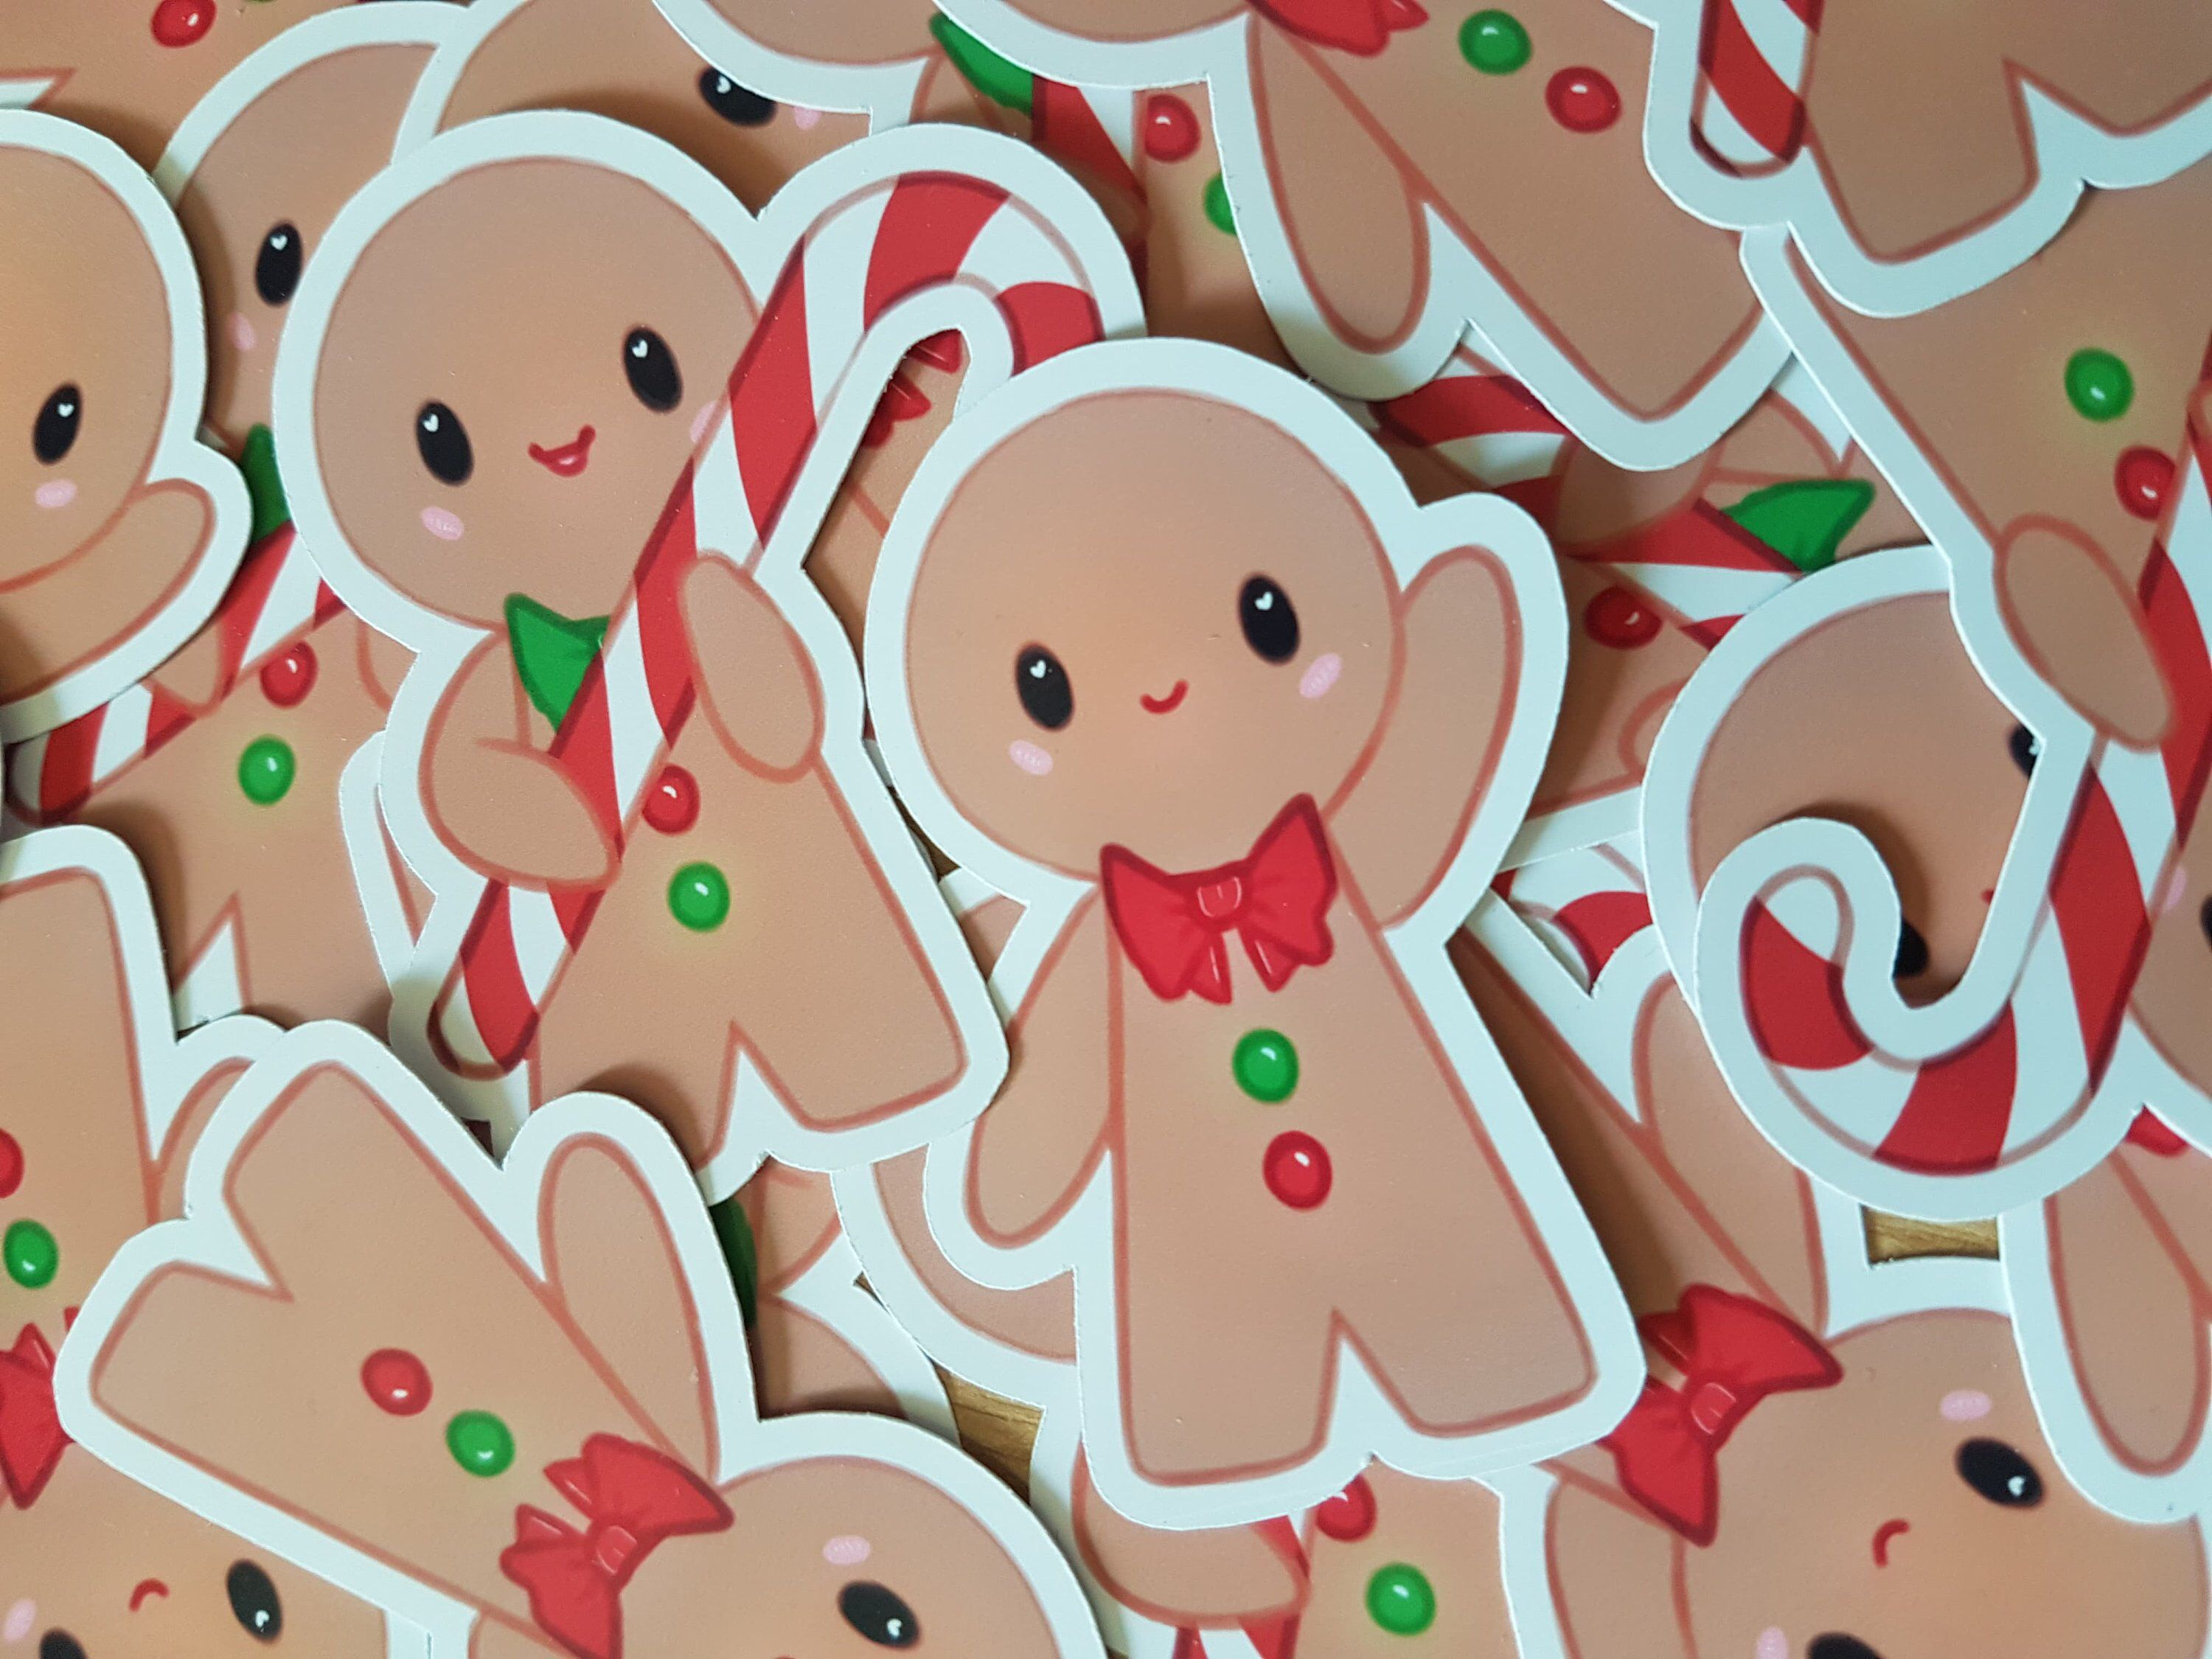 Excited to share this item from my etsy shop gingerbread men sticker christmas design laptop custom planner journal kawaii supplies